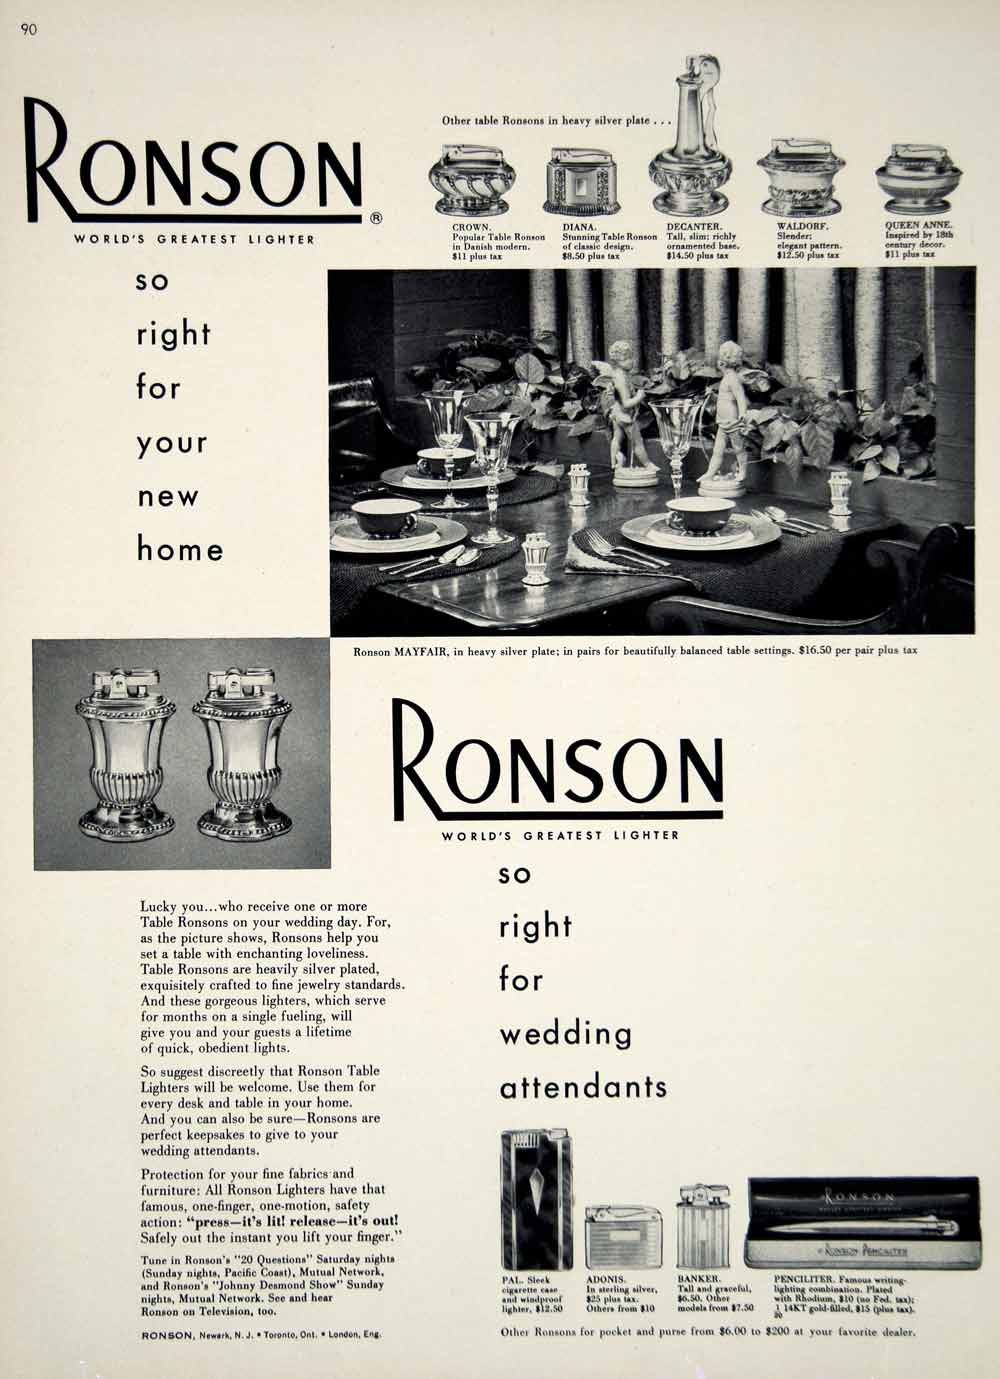 1949 Ad Vintage Ronson Table Cigarette Lighter Silverplated Wedding Gift YBSM1